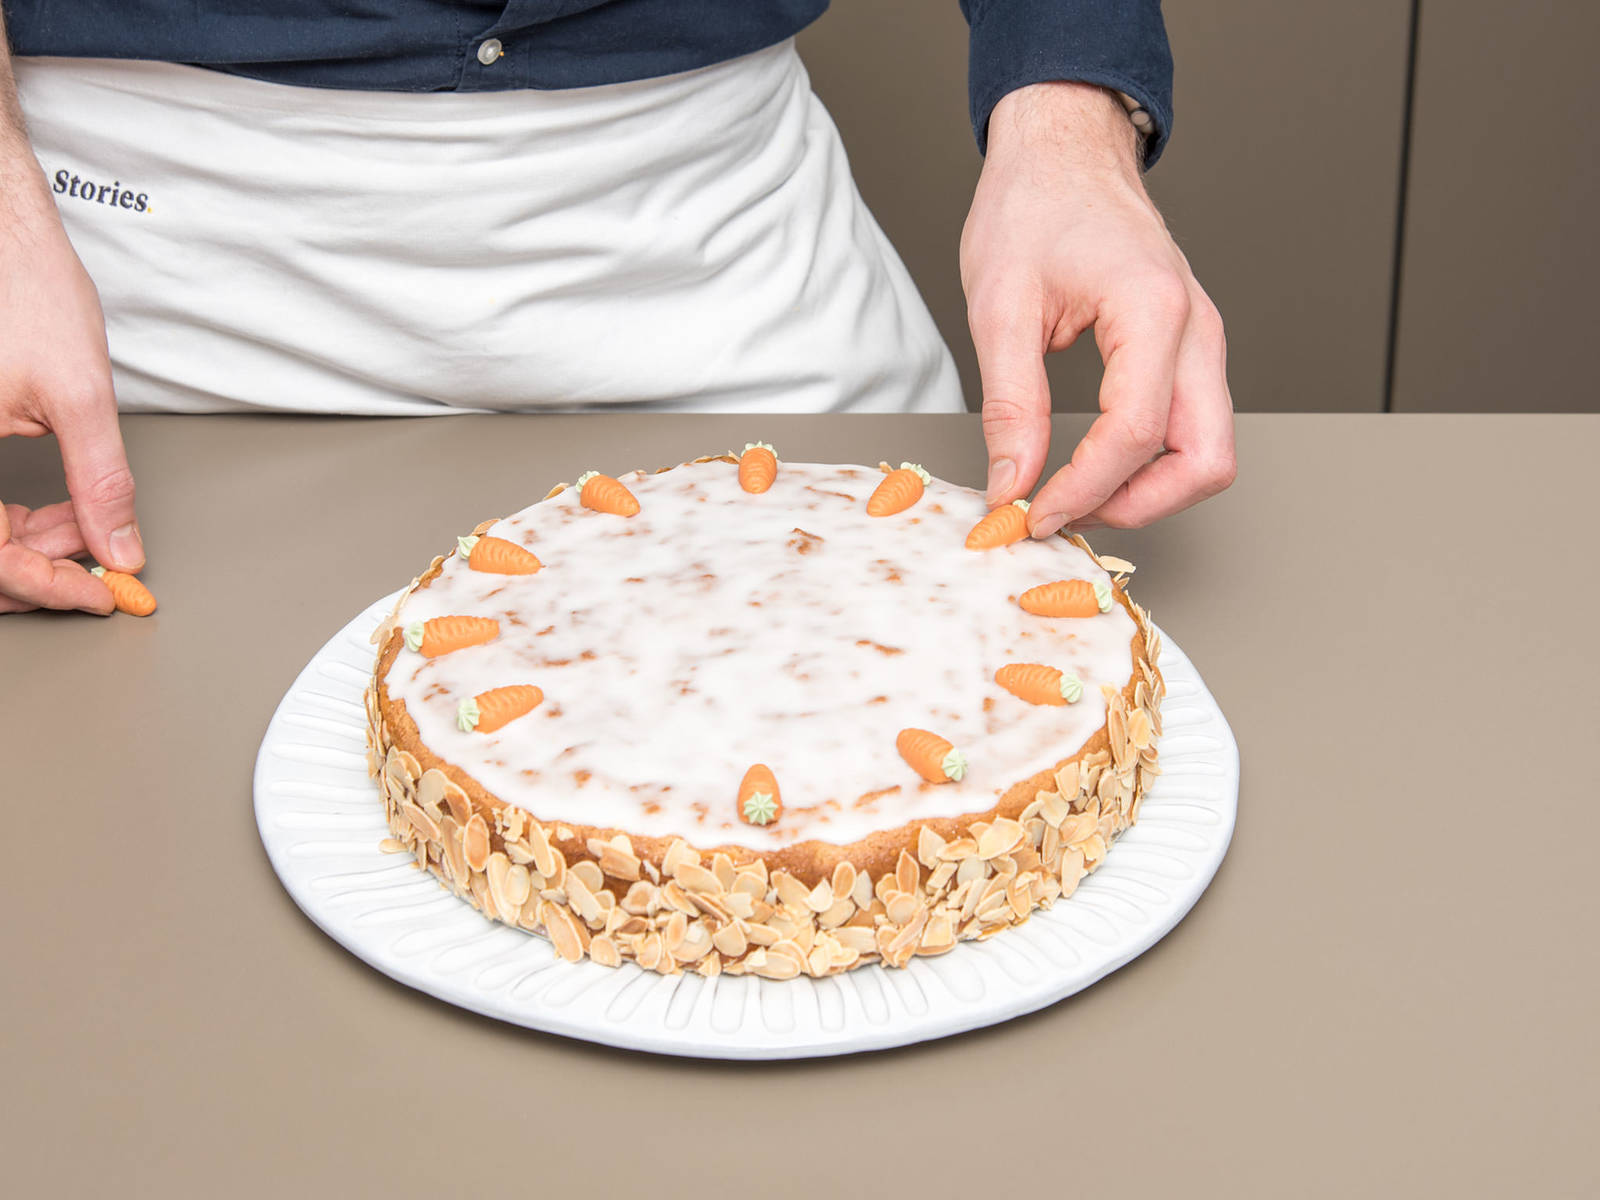 Sieve confectioner's sugar into a small bowl, and add water to make a thick icing. With a palette knife coat cake with apricot jam and evenly brush with icing. Decorate sides with roasted almond slices and the top with marzipan carrots. Enjoy!